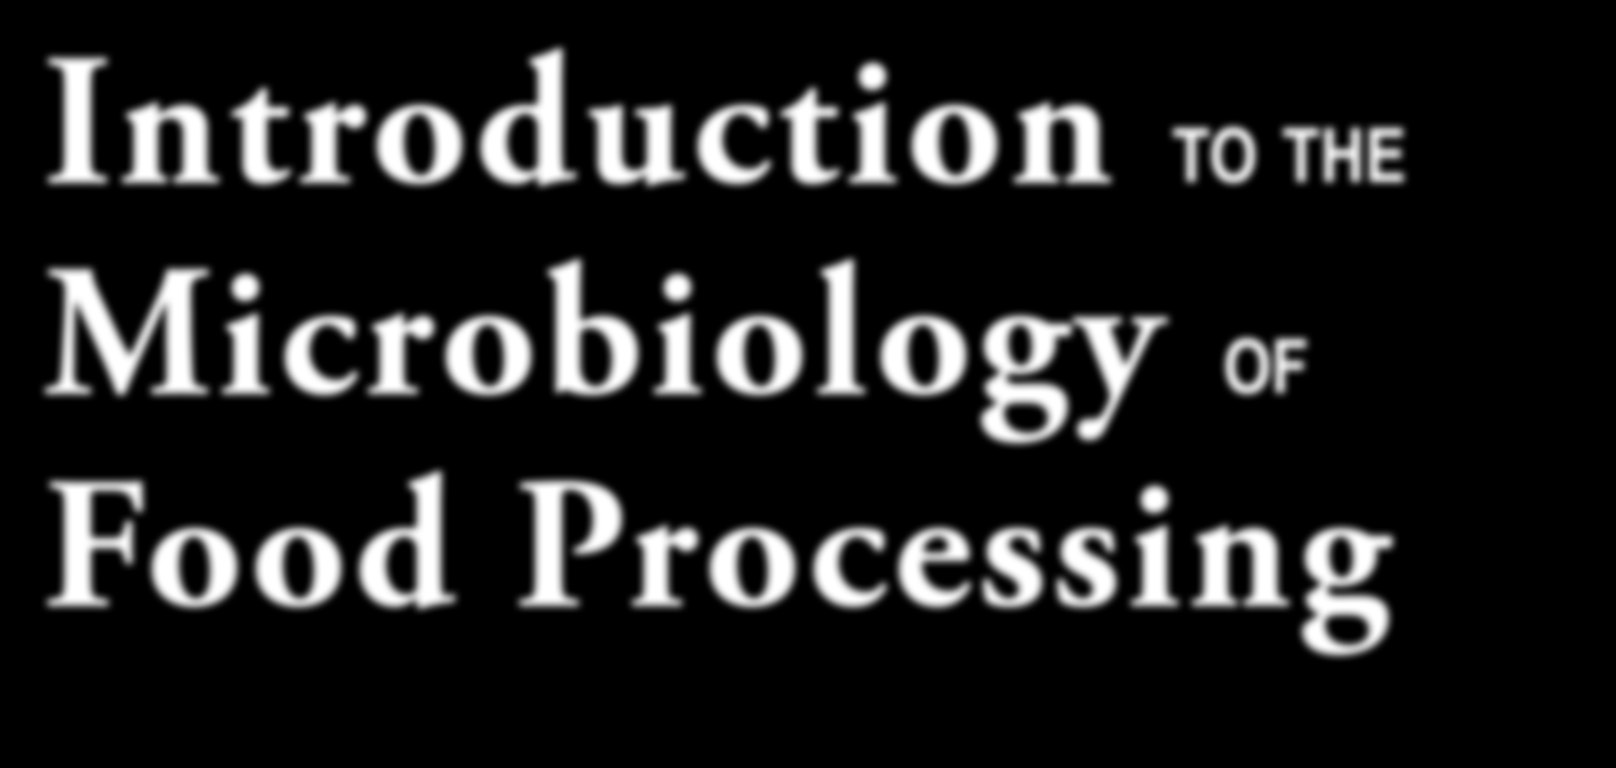 Intro_to_the_Microbiology_080812.